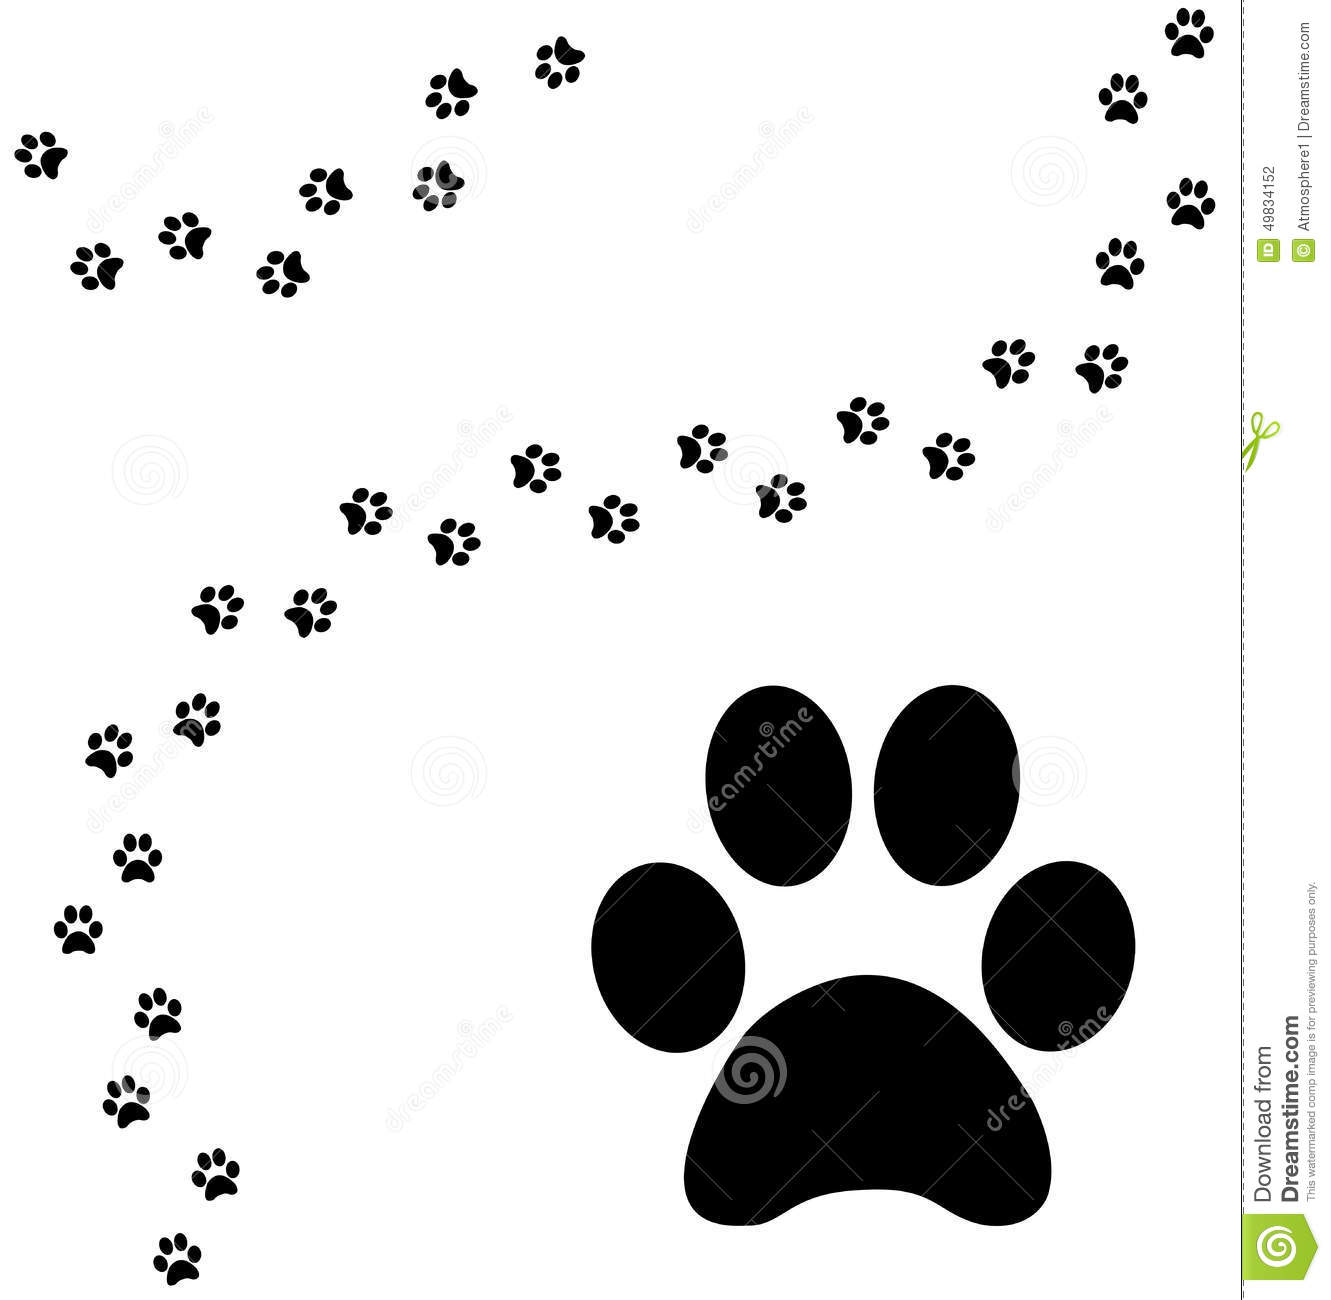 Cat Paw Print Curved Path Stock Illustration - Image: 49834152